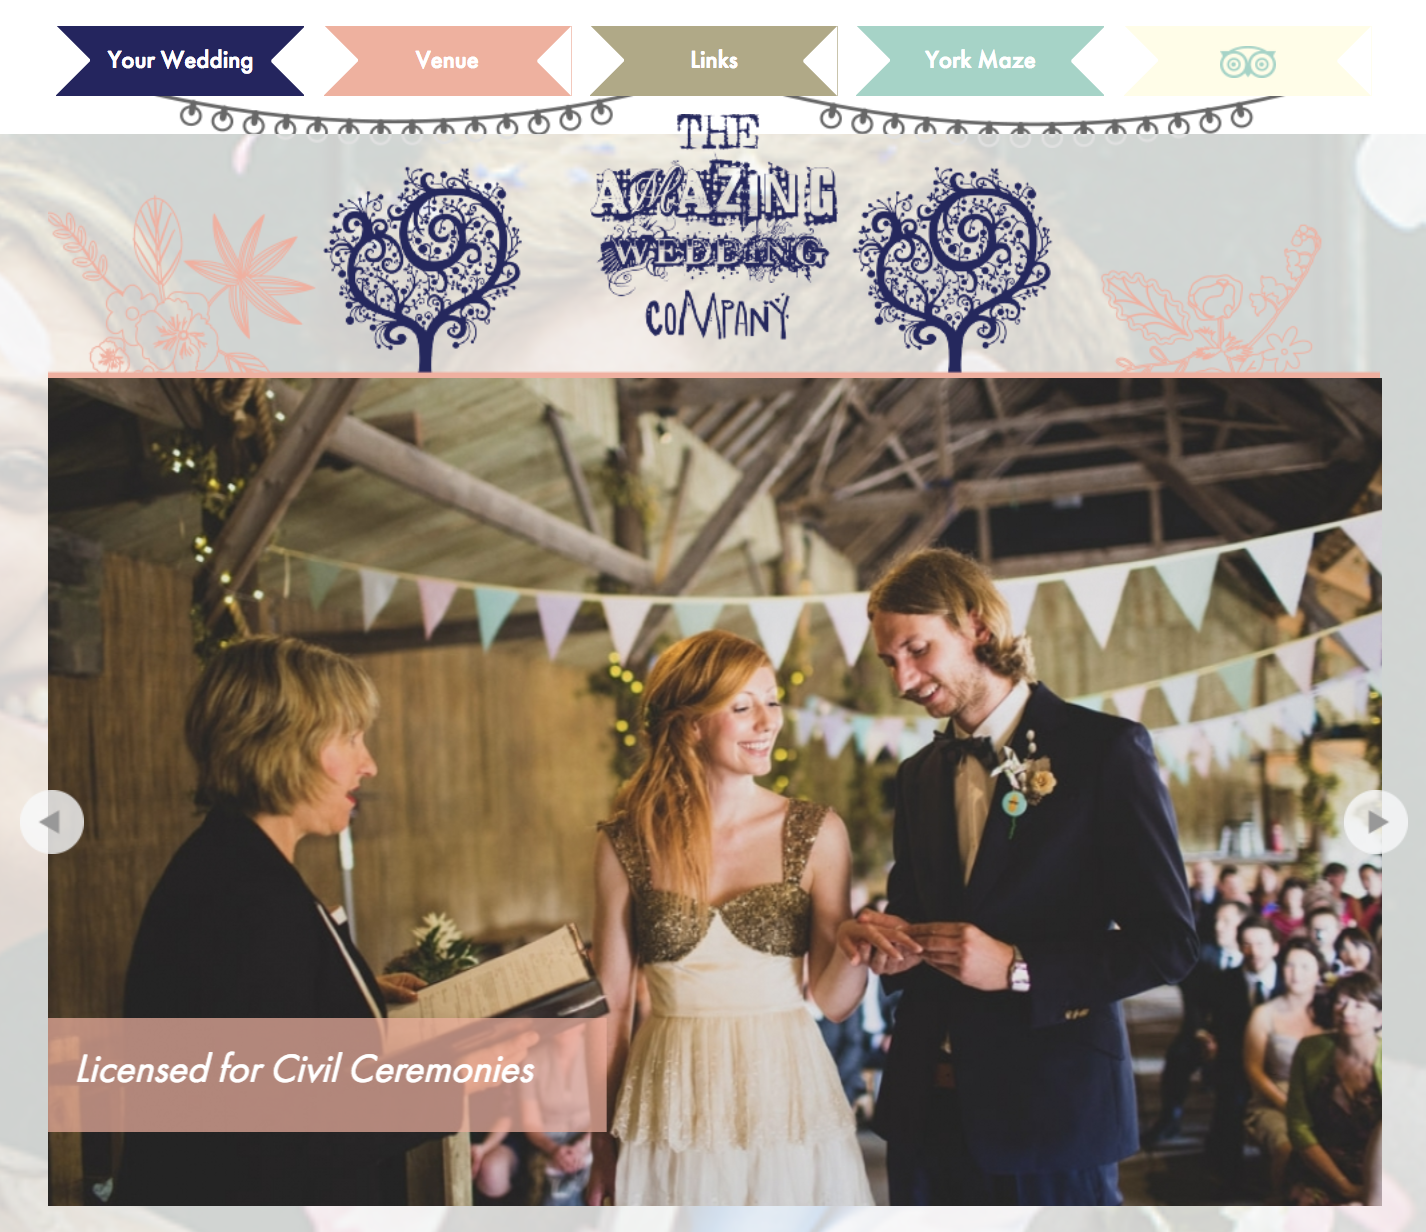 Screenshot from the York Maze Weddings homepage, featured wedding image by Tobiah Tayo.